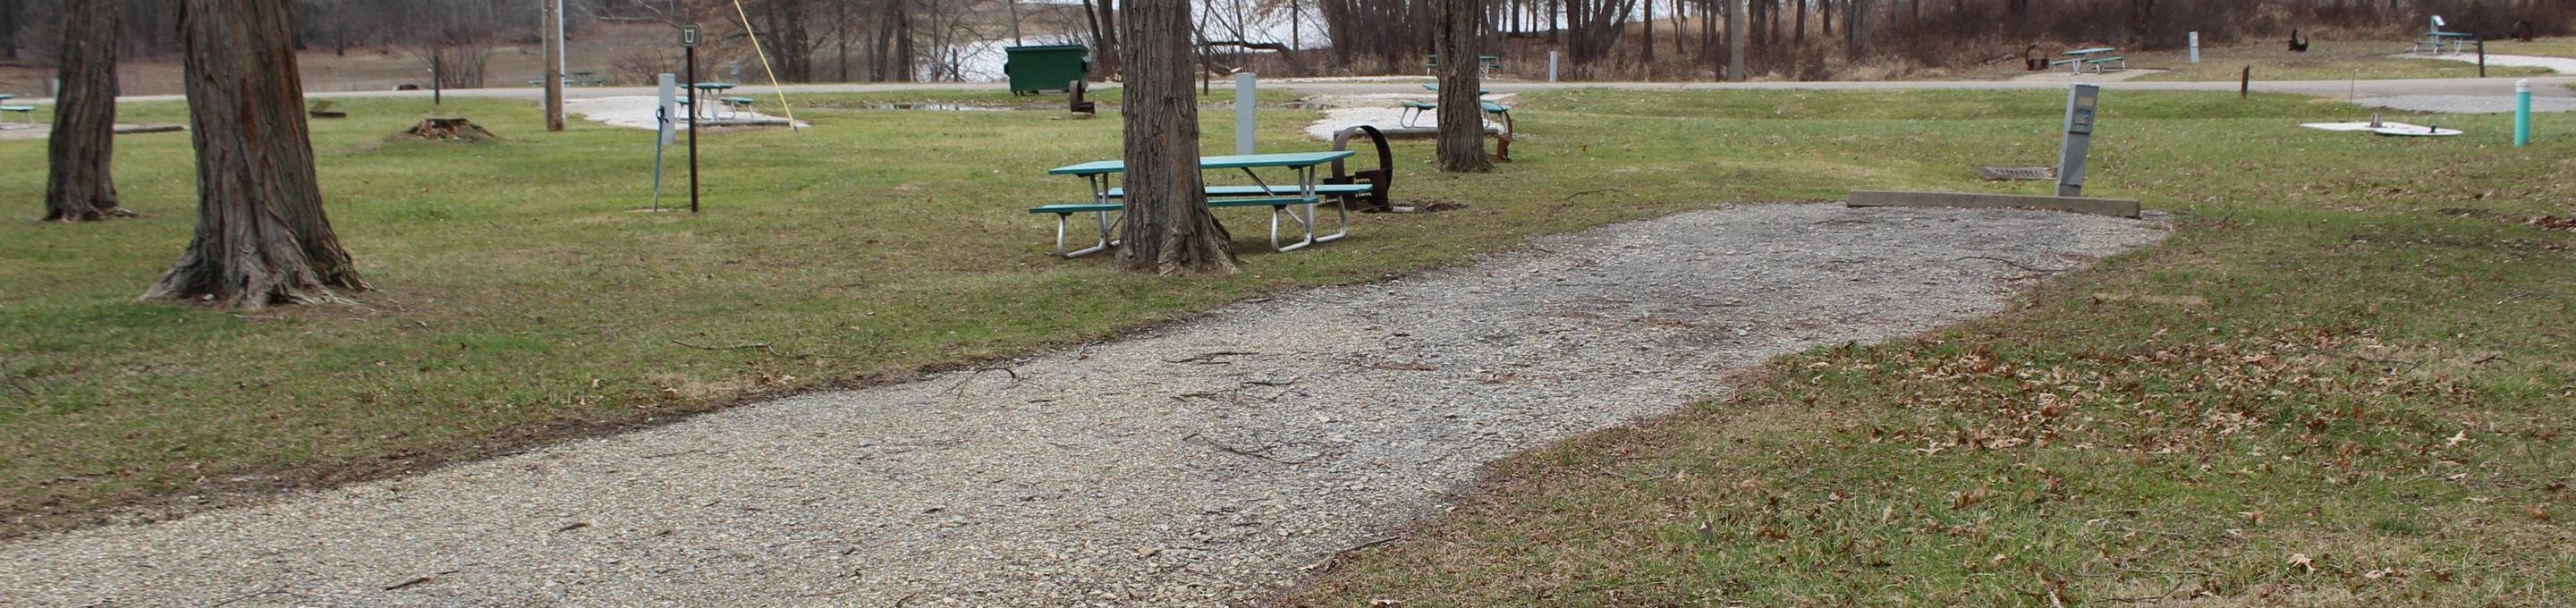 An image of the Maplewood 46 Campsite.The Maplewood 46 Campsite.